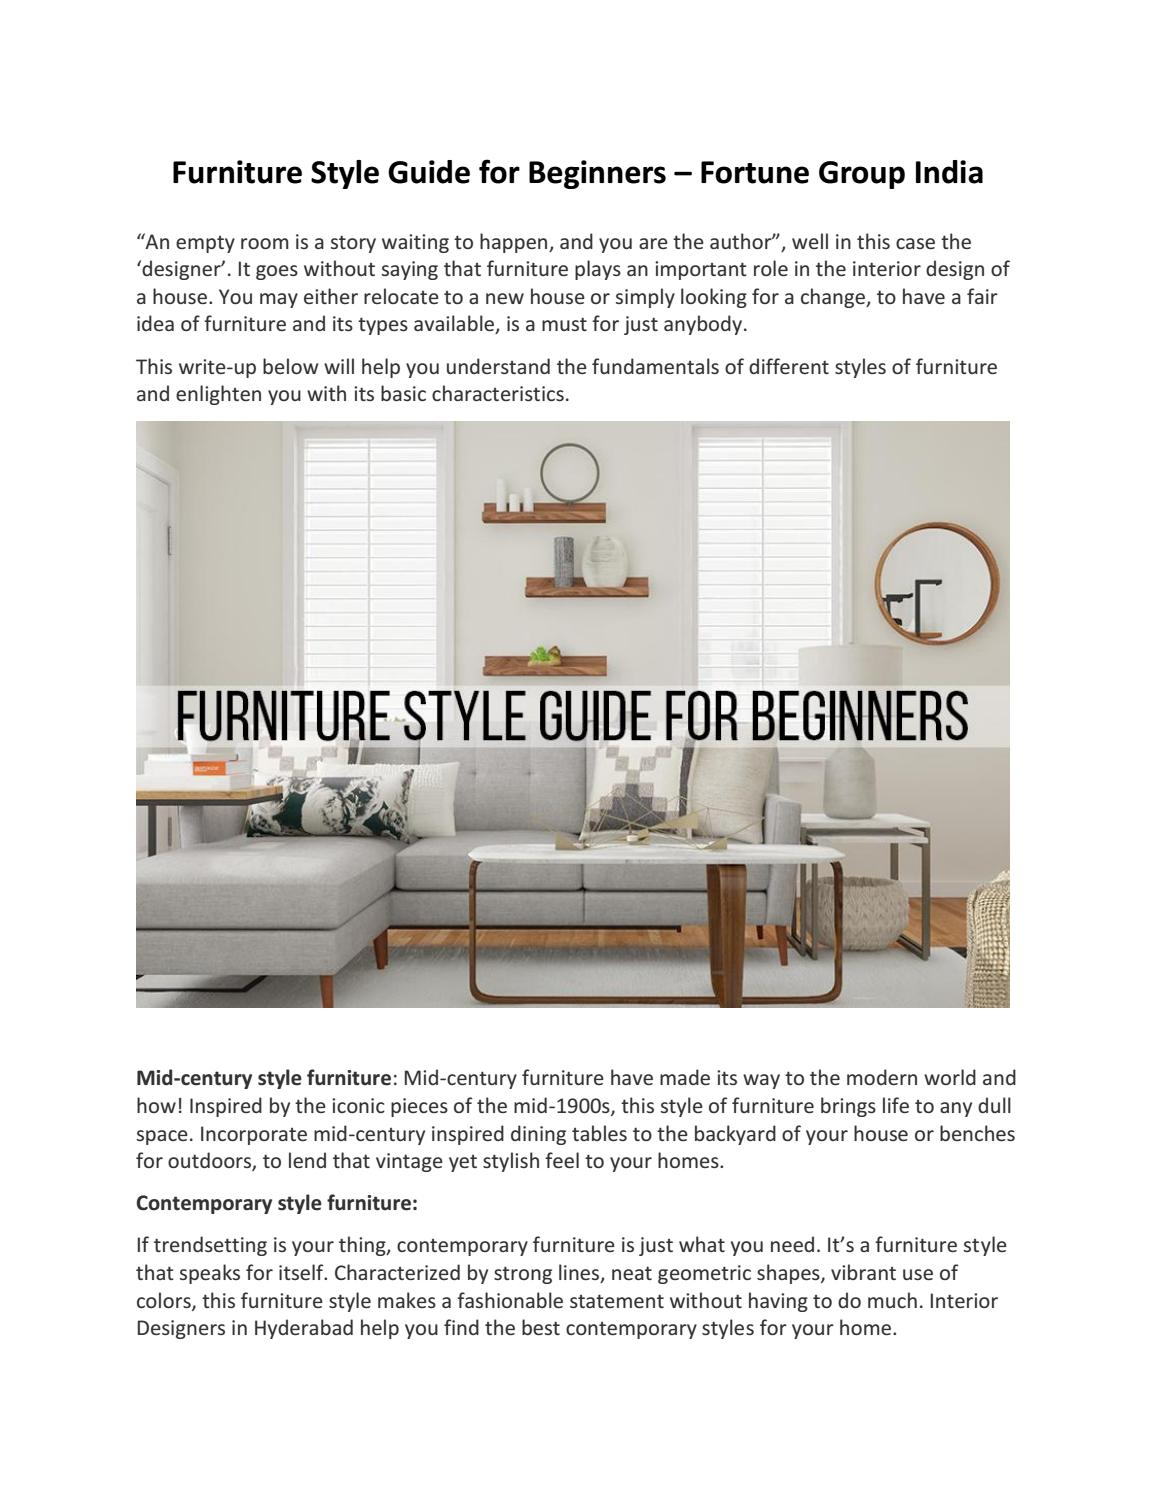 Furniture Style Guide For Beginners Fortune Group India By